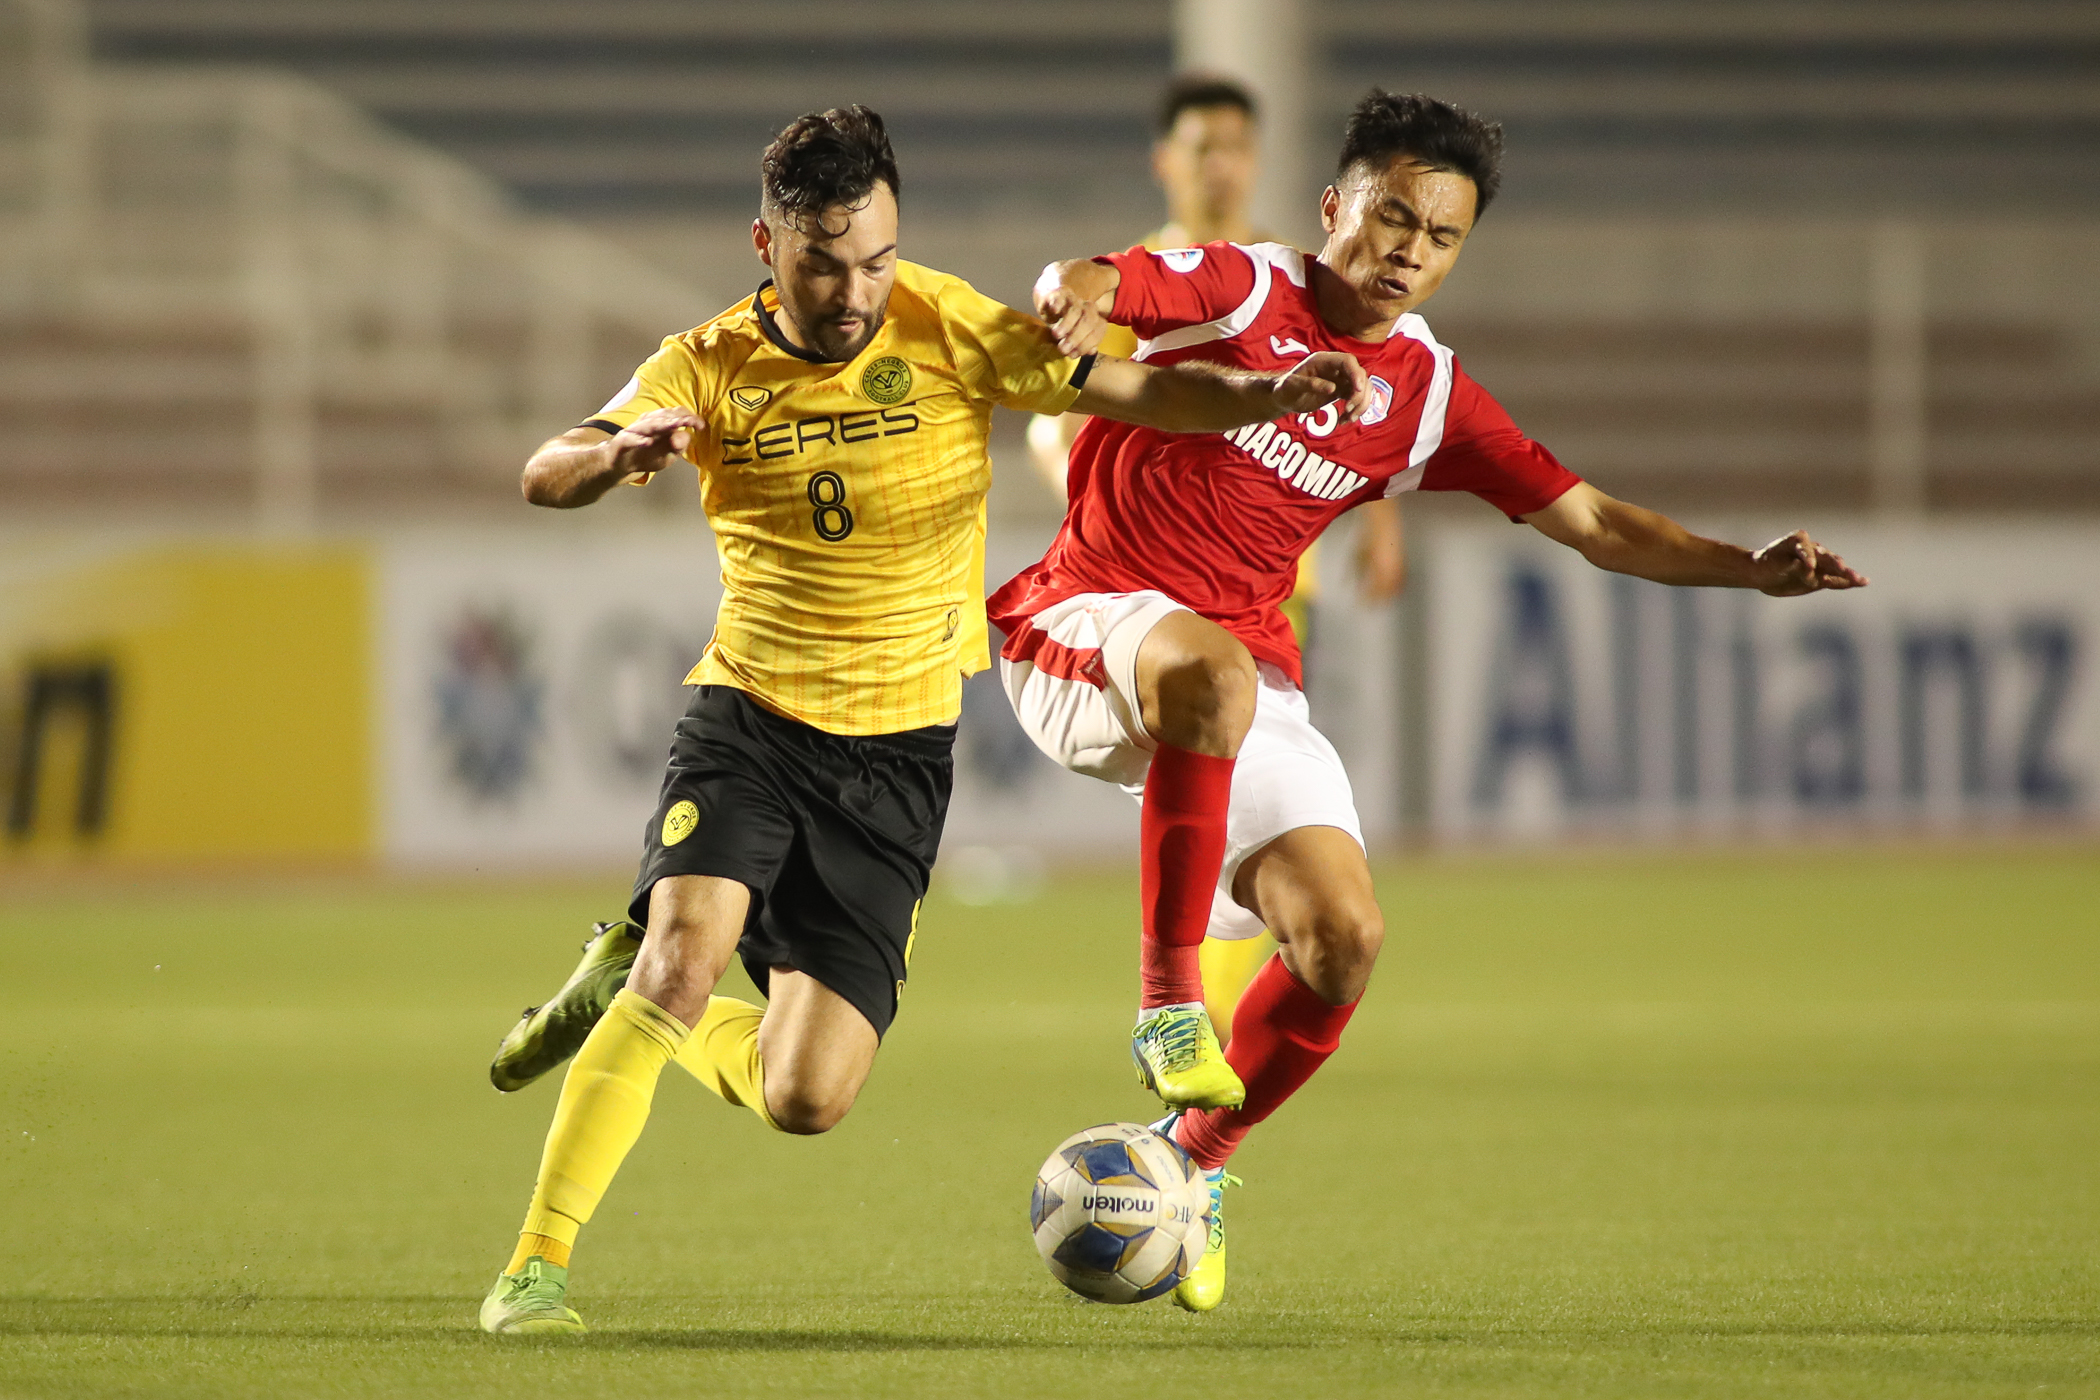 Ceres-Negros stays top after 2-2 draw with Than Quang Ninh